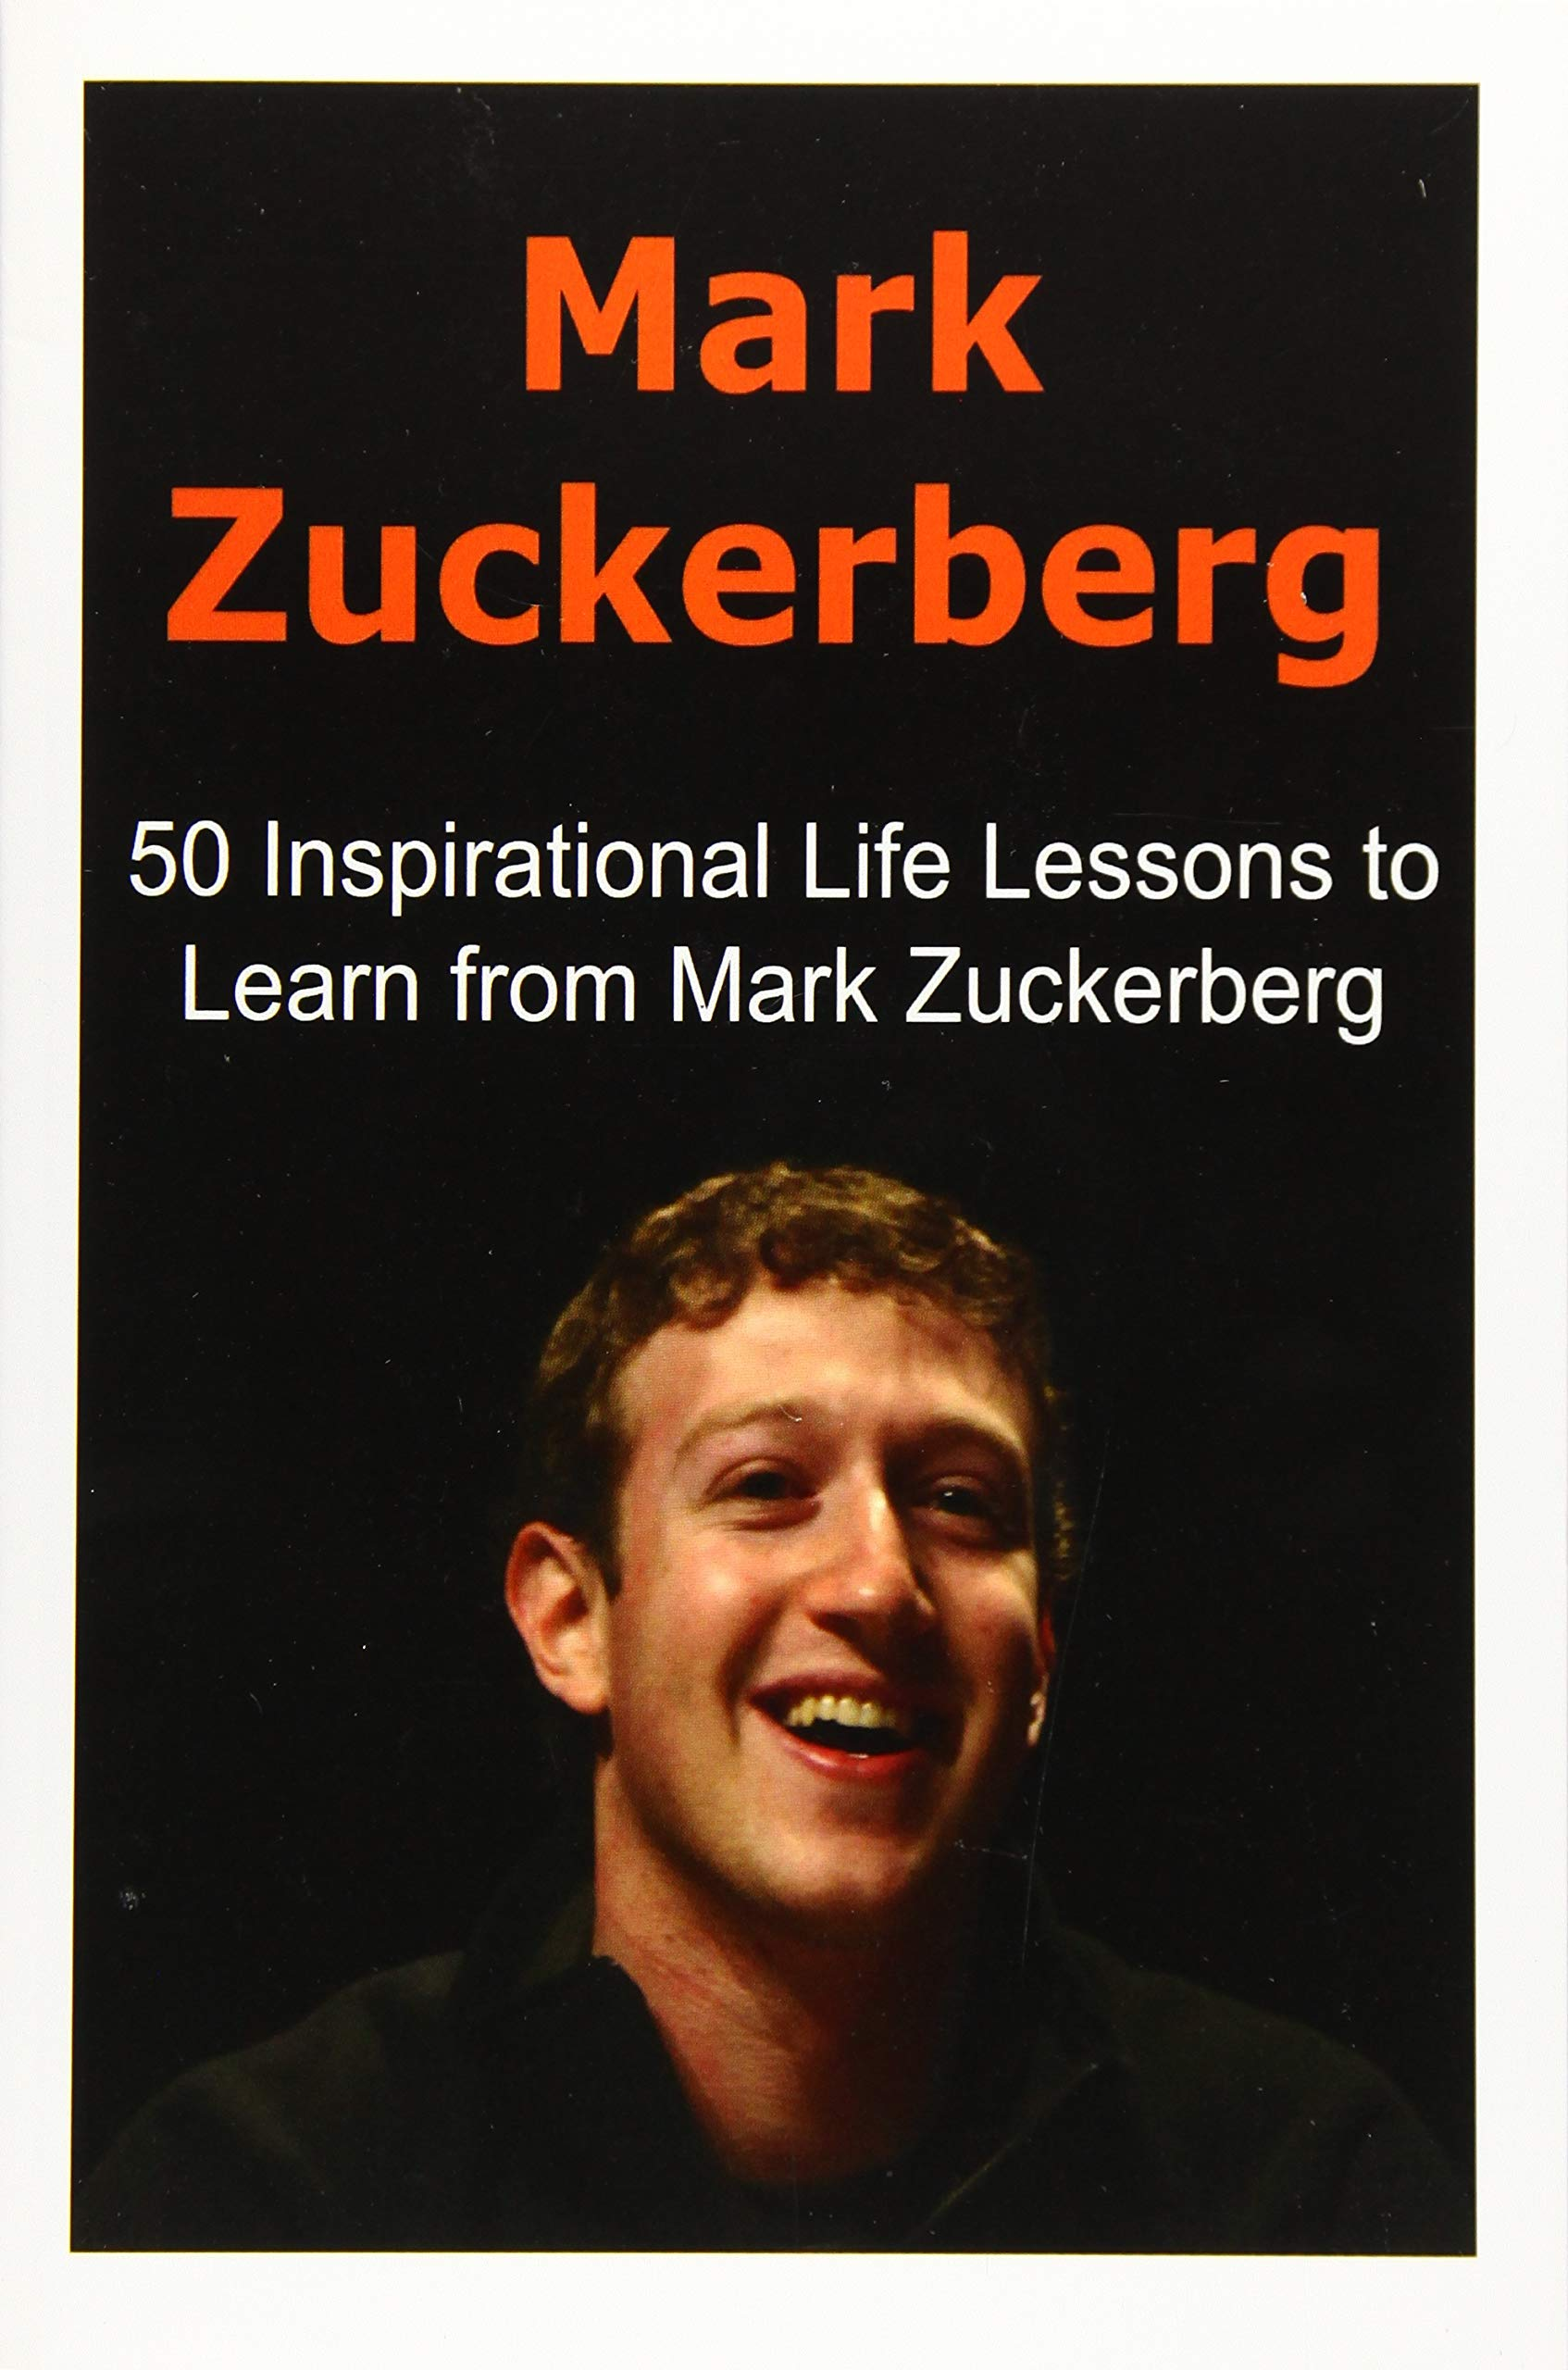 Mark Zuckerberg: 50 Inspirational Life Lessons to Learn from Mark Zuckerberg: Mark Zuckerberg, Mark Zuckerberg Book, Facebook,Facebook CEO, Mark Zuckerberg Lessons